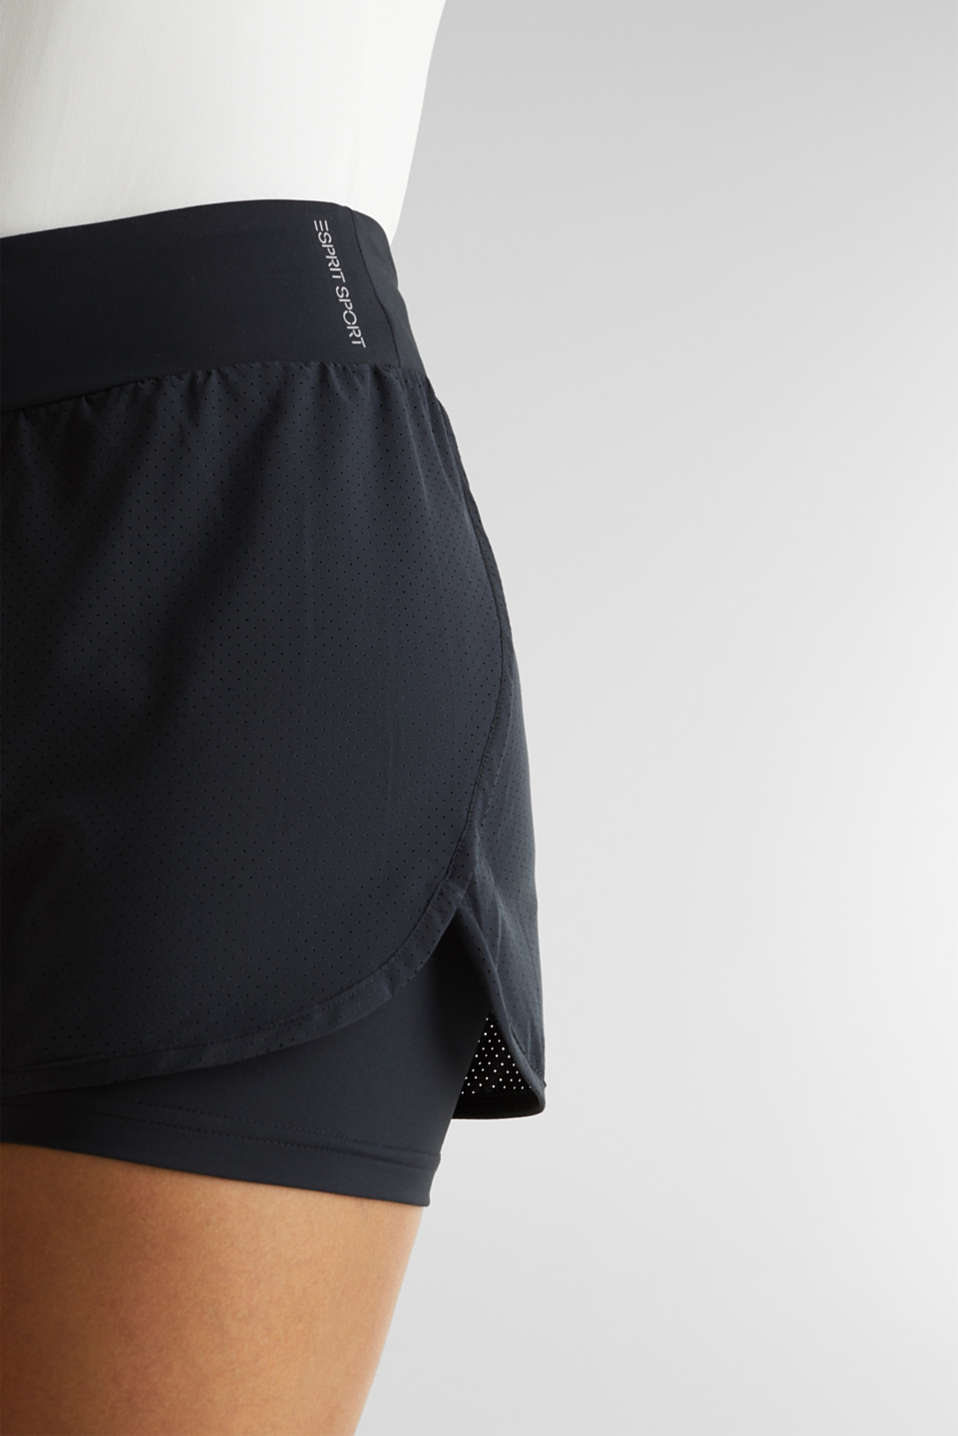 2-in-1: layered shorts made of mesh, edry, BLACK, detail image number 4